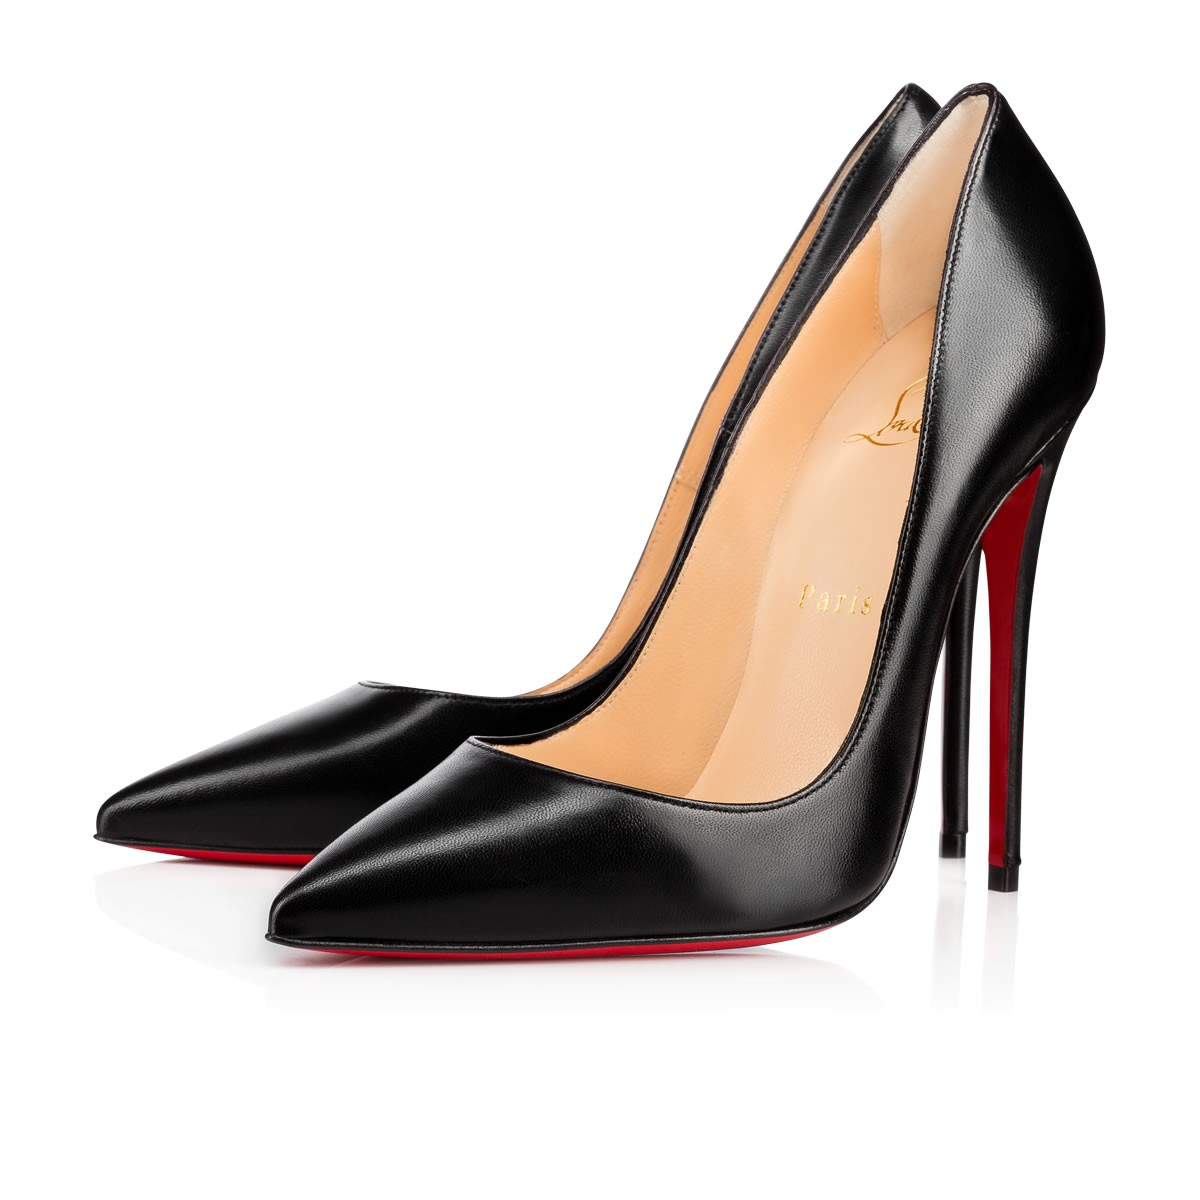 Black So Kate 120 leather pumps Christian Louboutin sRPKCPRpE